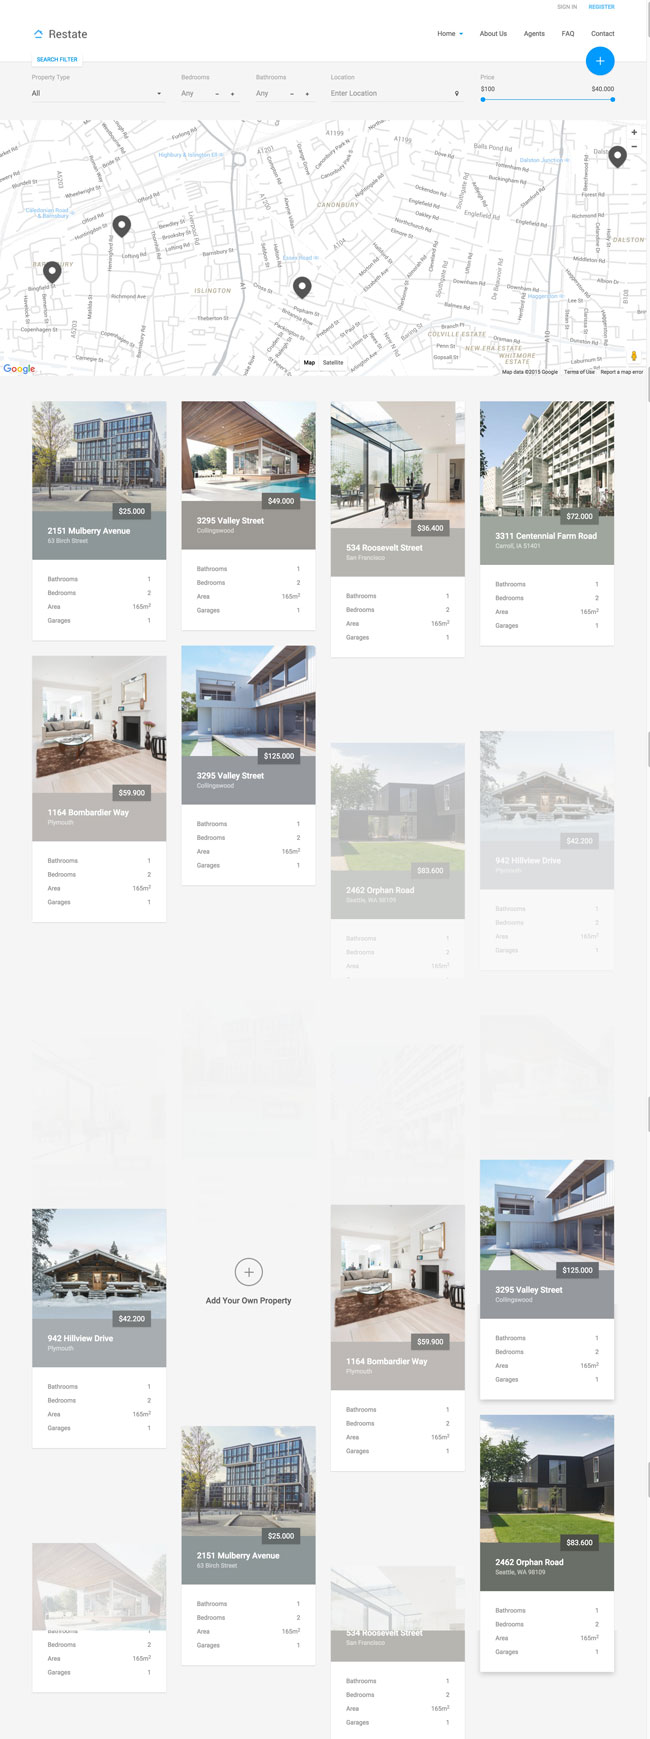 Restate-Different-Real-Estate-Material-Template